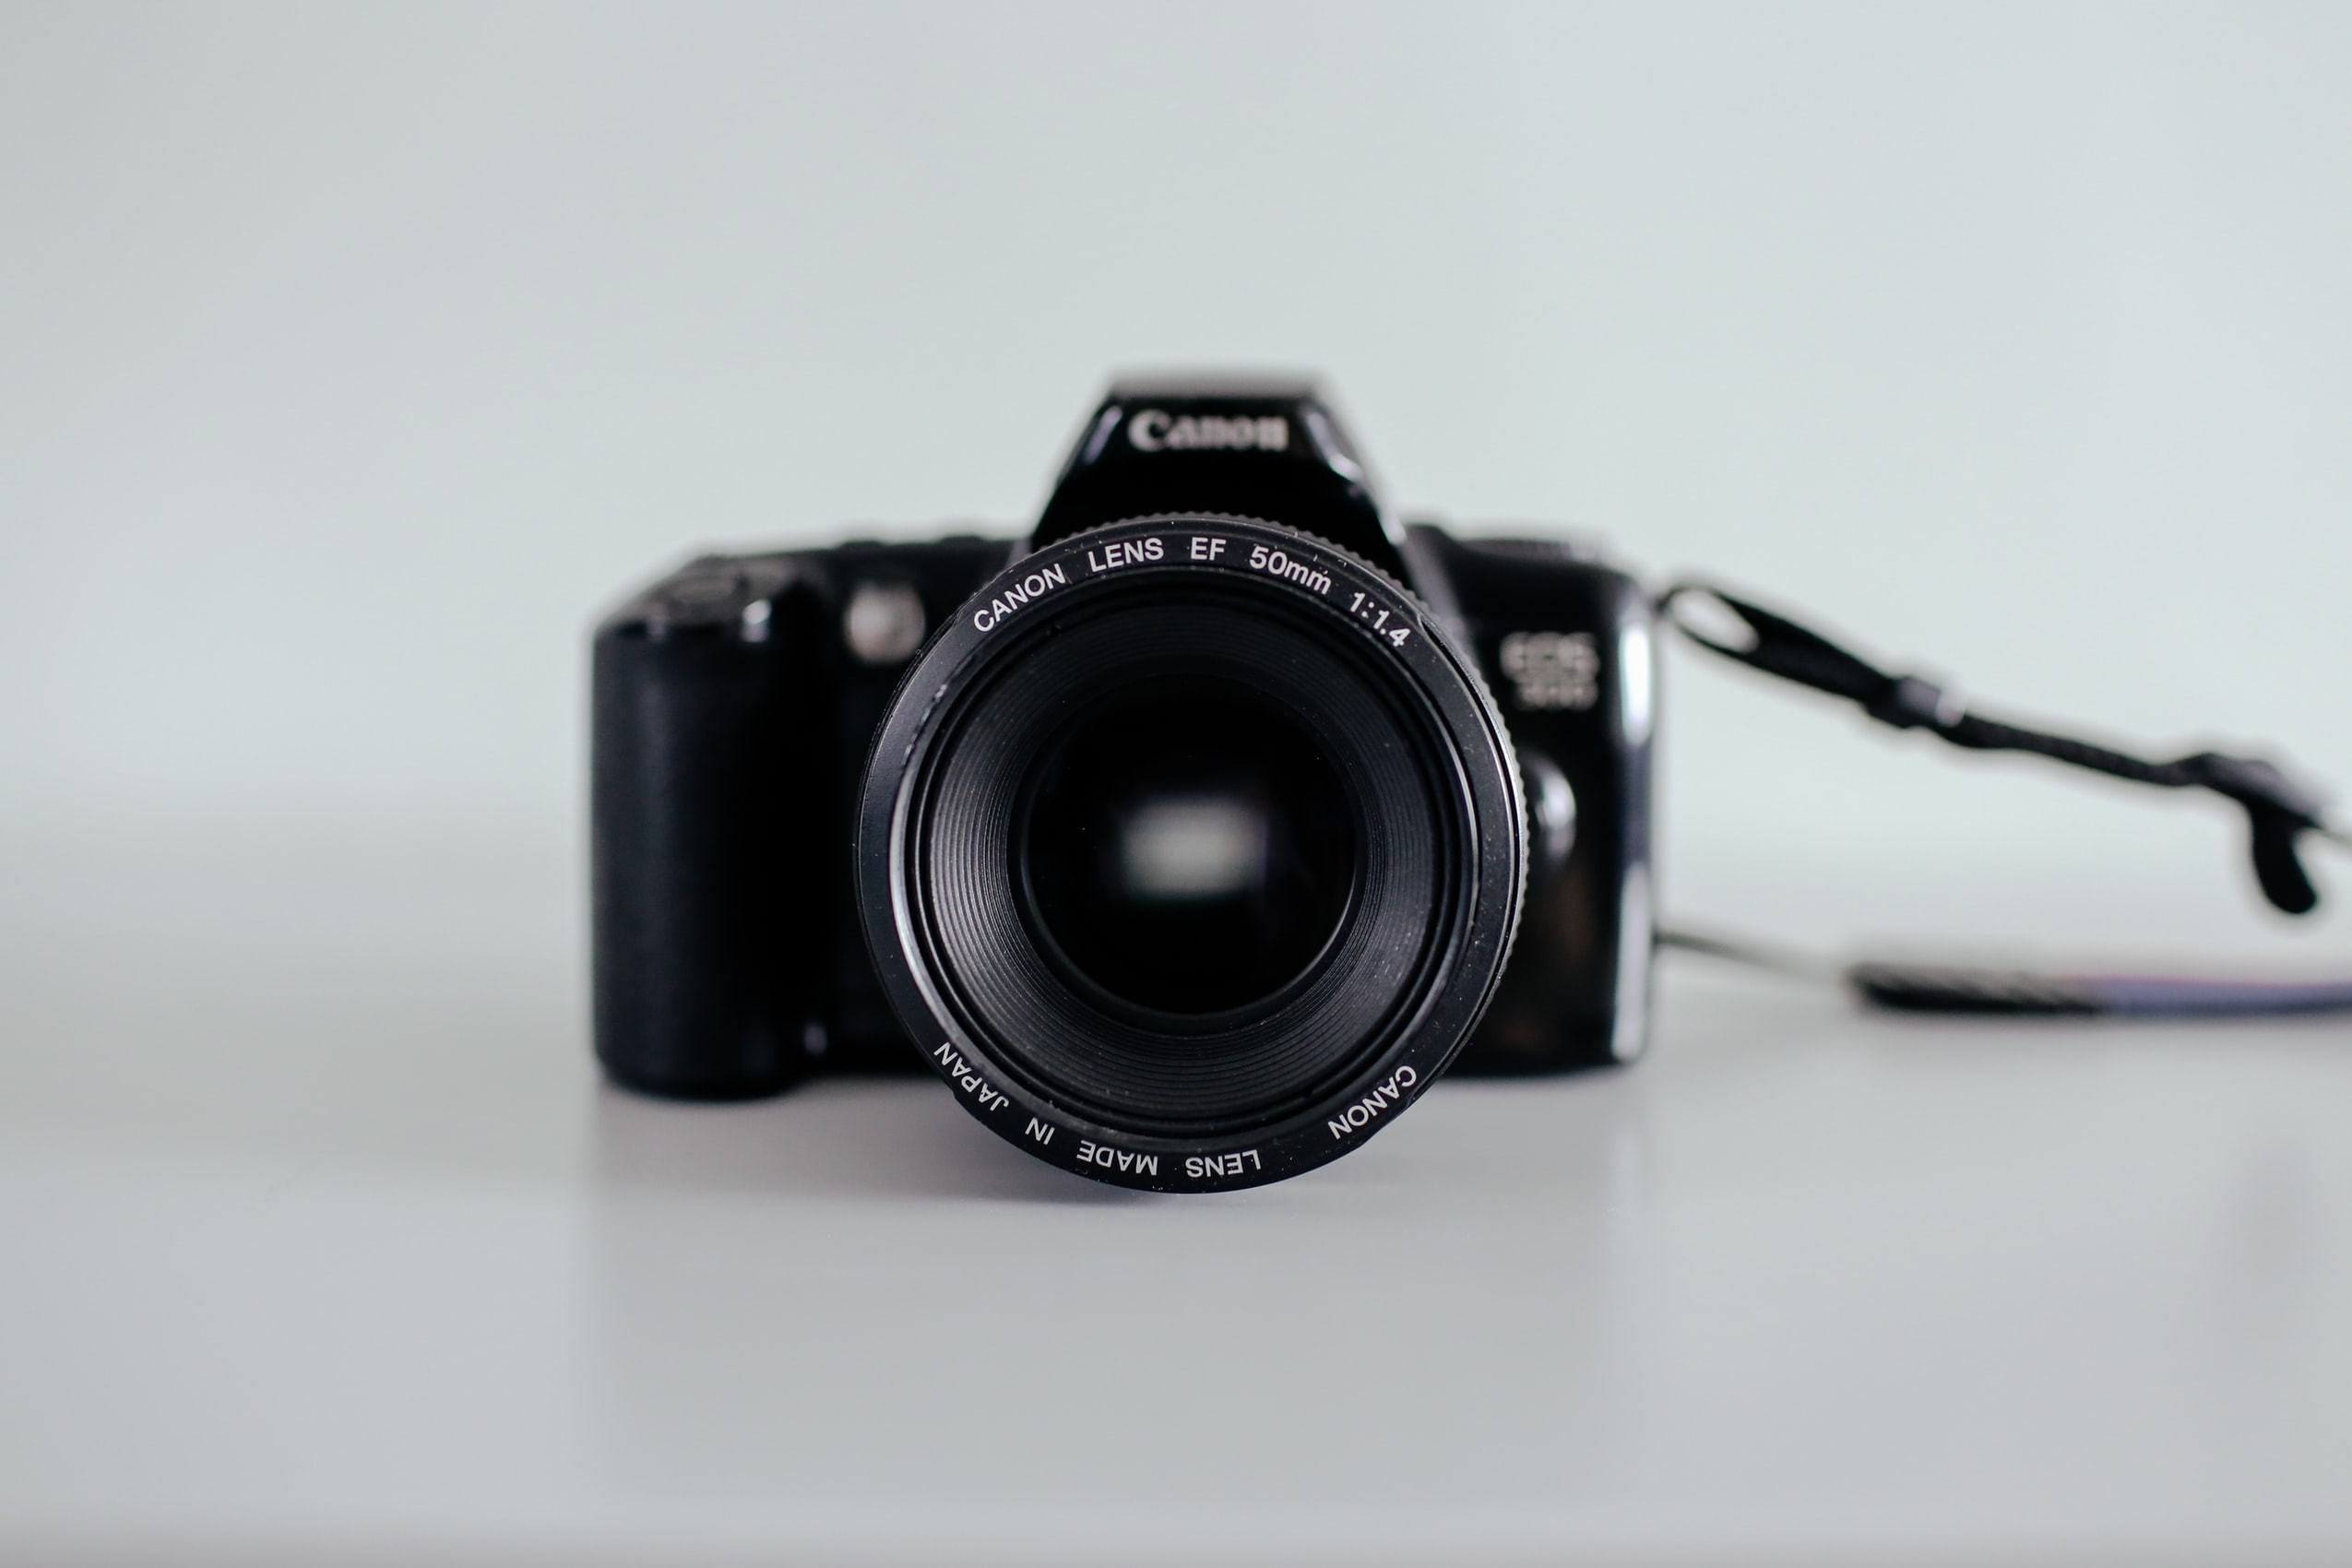 10 Best Budget Cameras For Filmmaking in 2019 - An image of a Canon DSLR camera